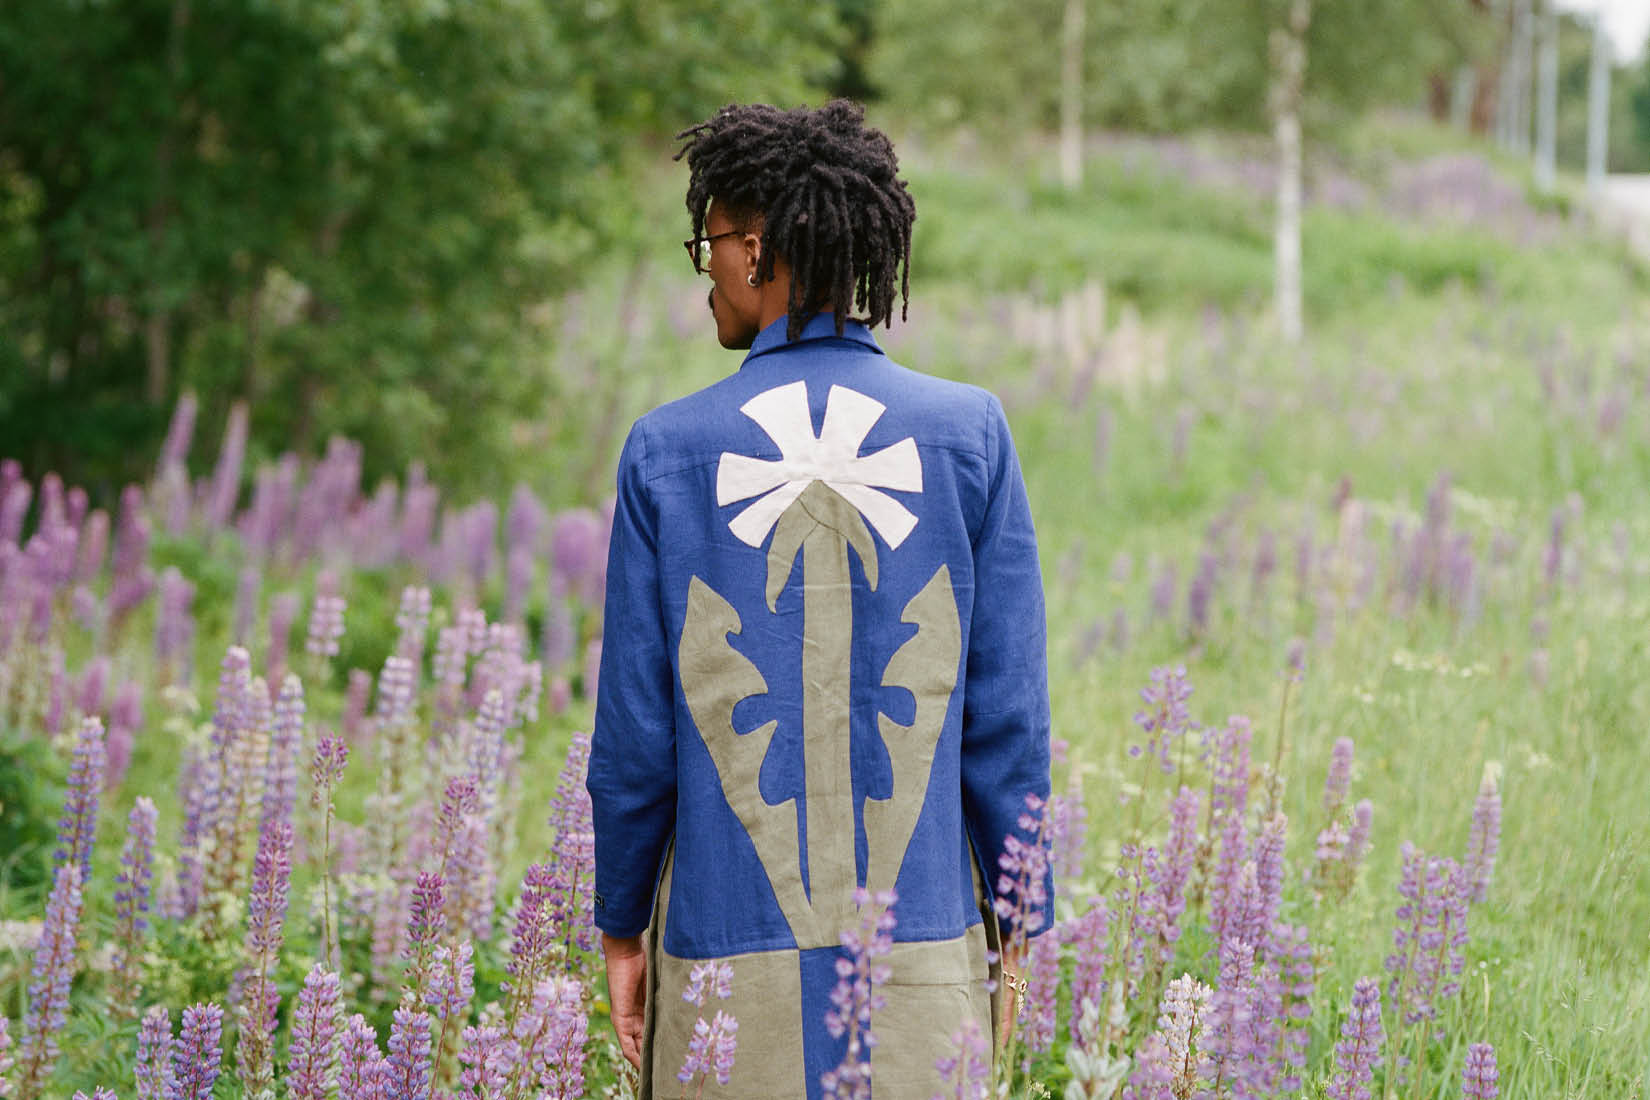 A man standing in a field of wild flowers, showing his back and wearing a long coat with a modern design of a flower.